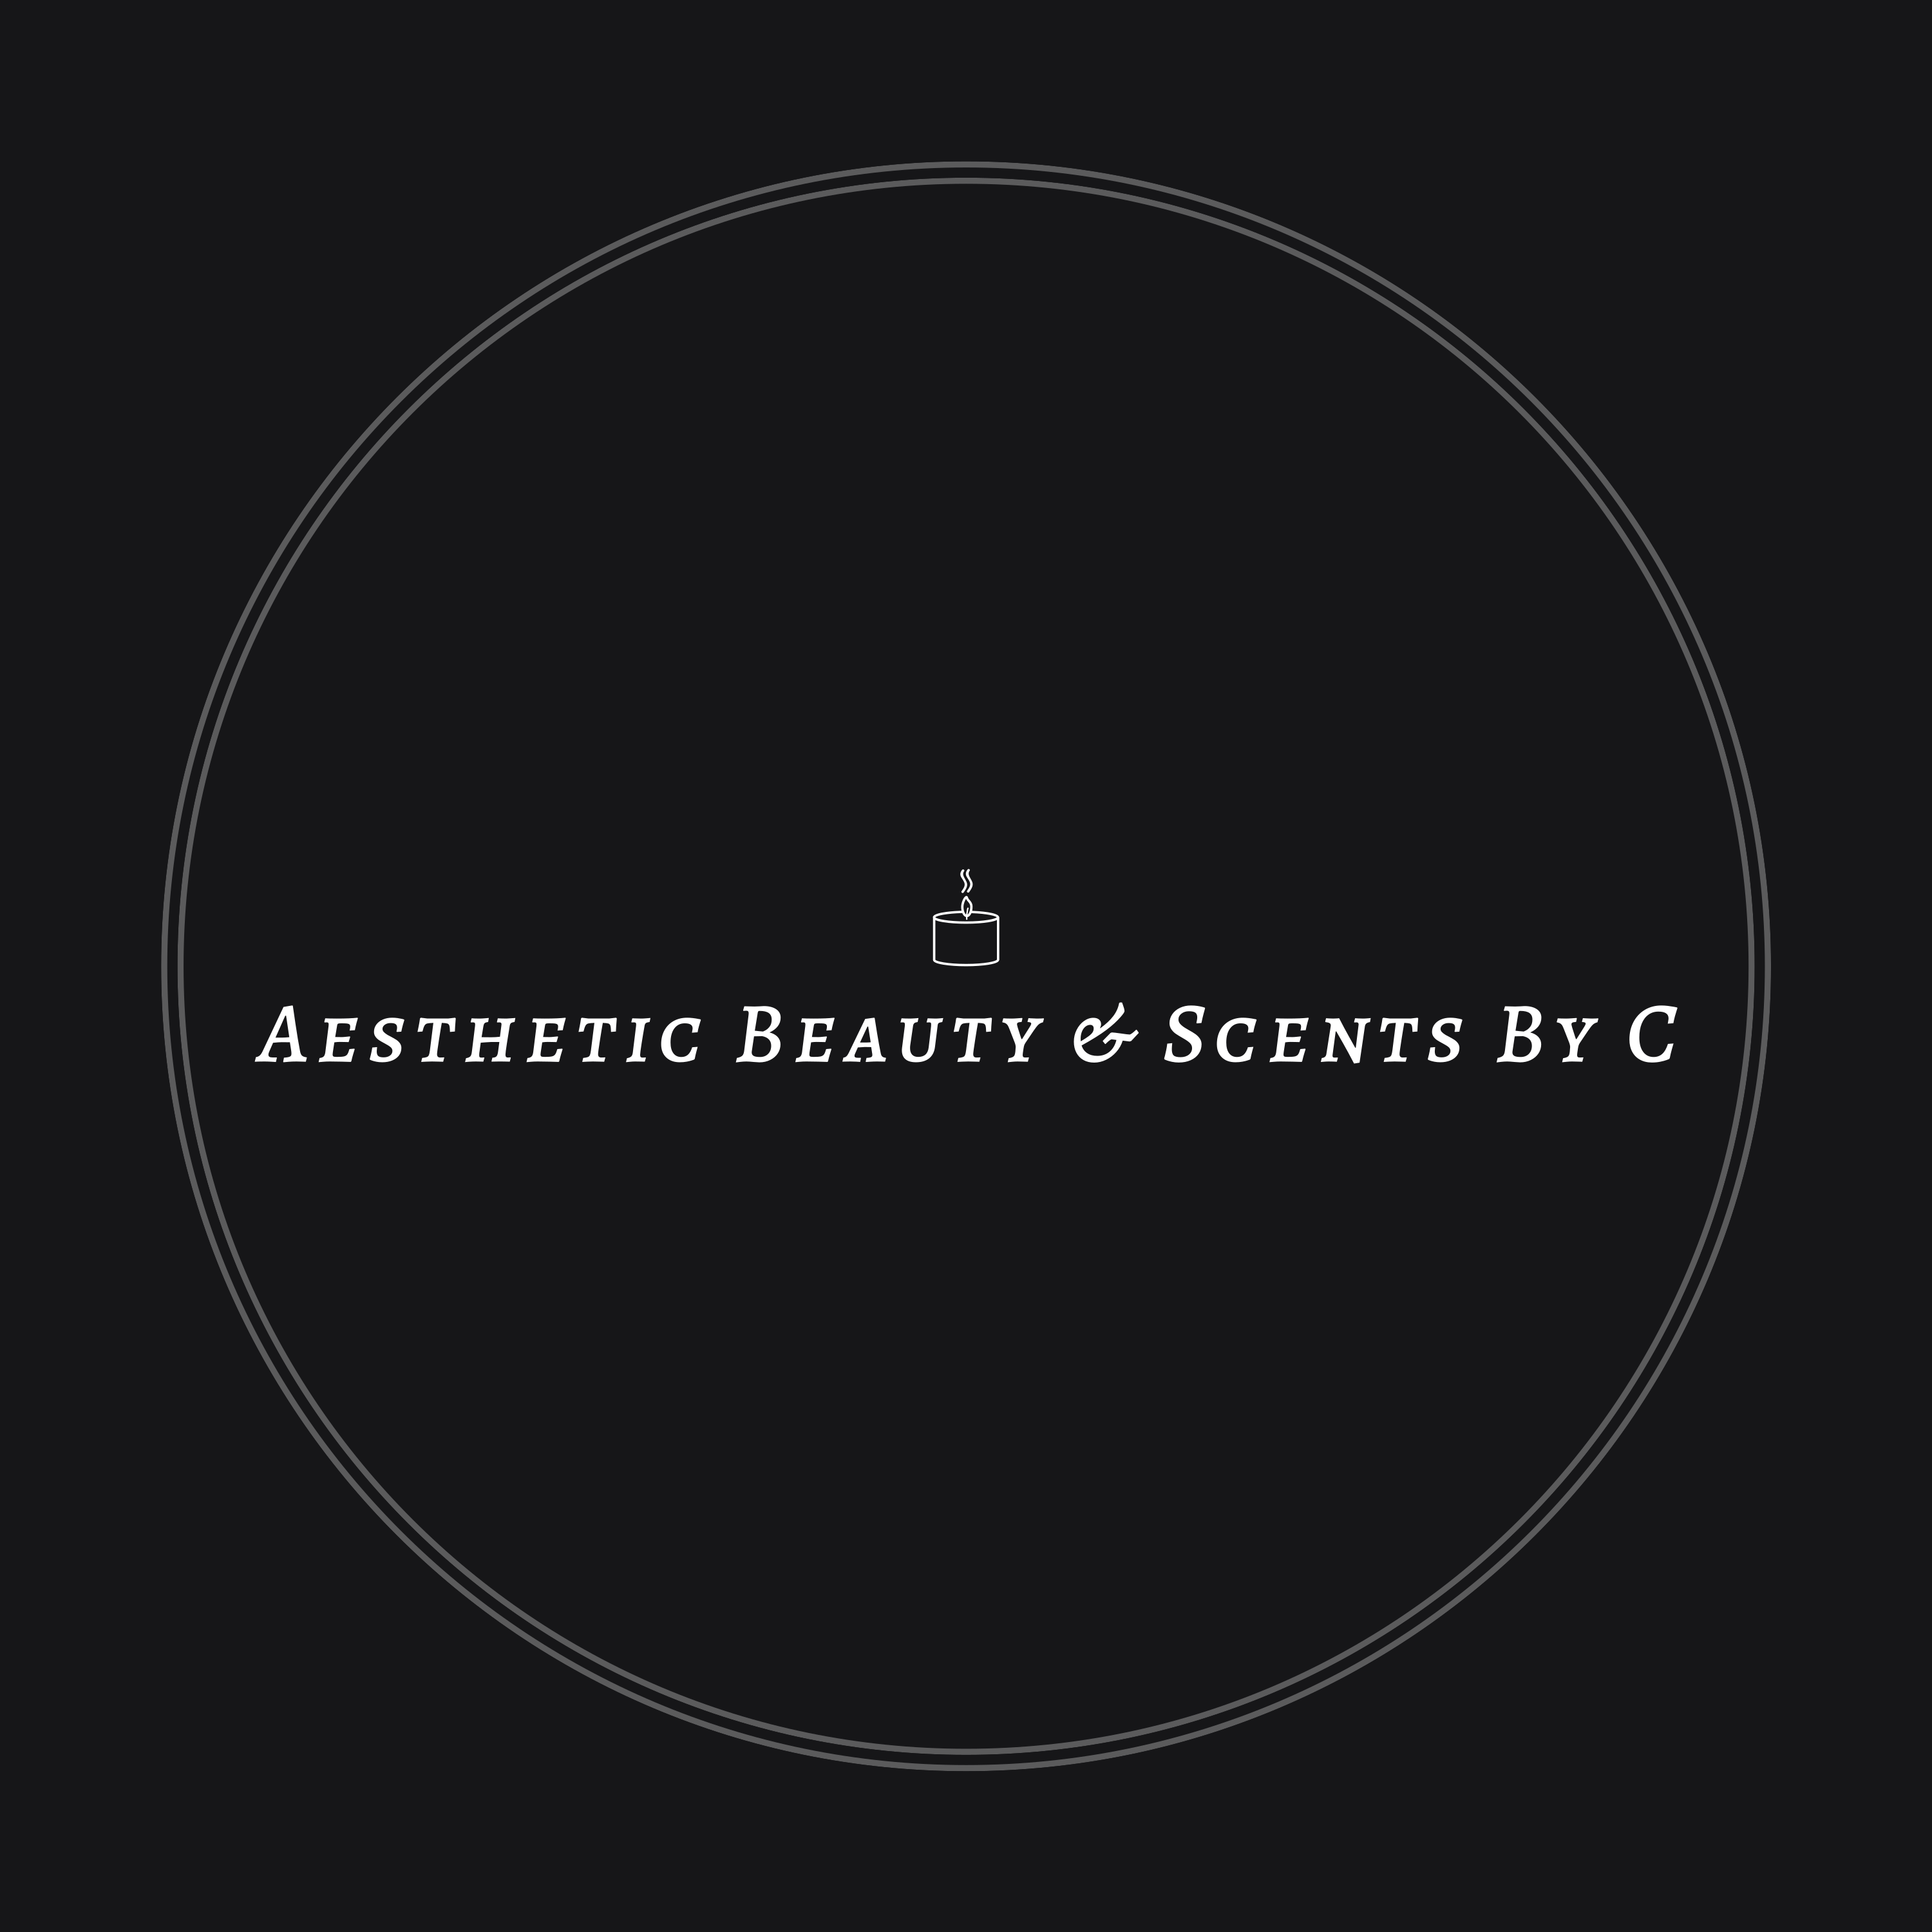 Aesthetic Beauty & Scents By C